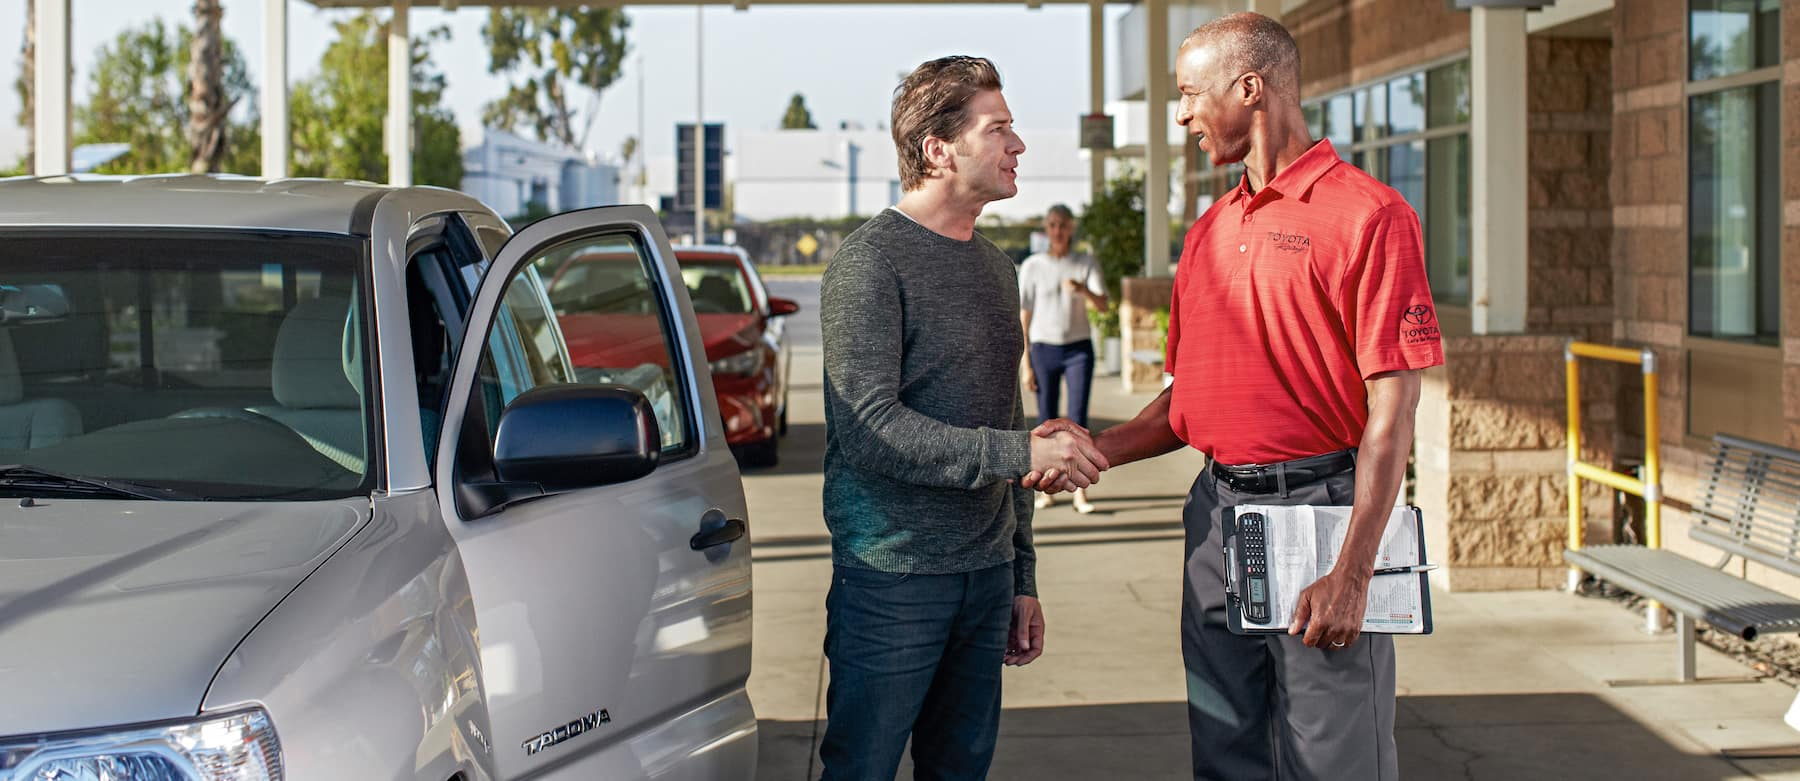 New Car Alternative at Hartford Toyota | Sales Advisor Shaking Hands with Customer Next to a Toyota Tacoma